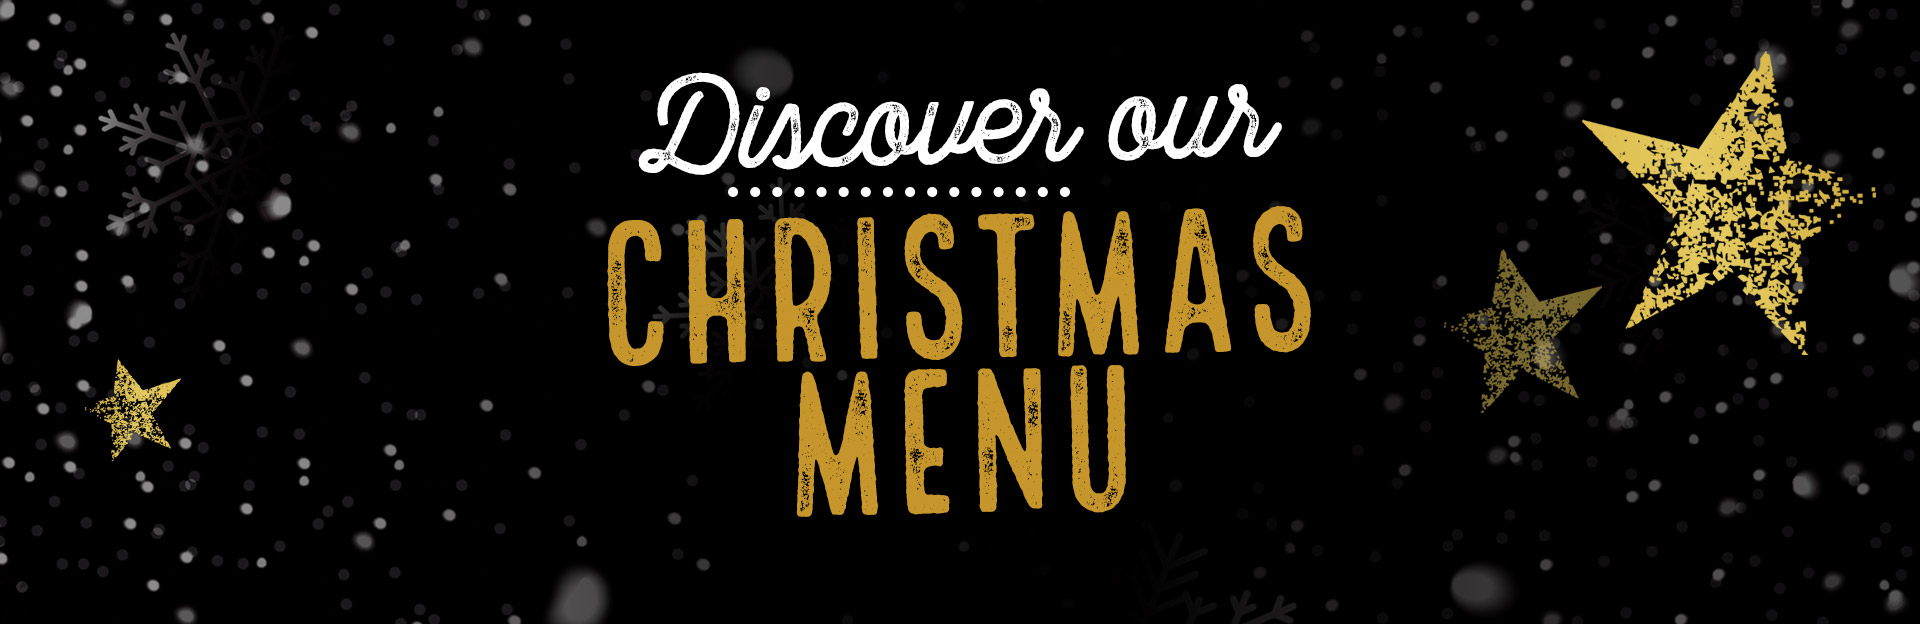 Craic it up this Christmas at The Beverley